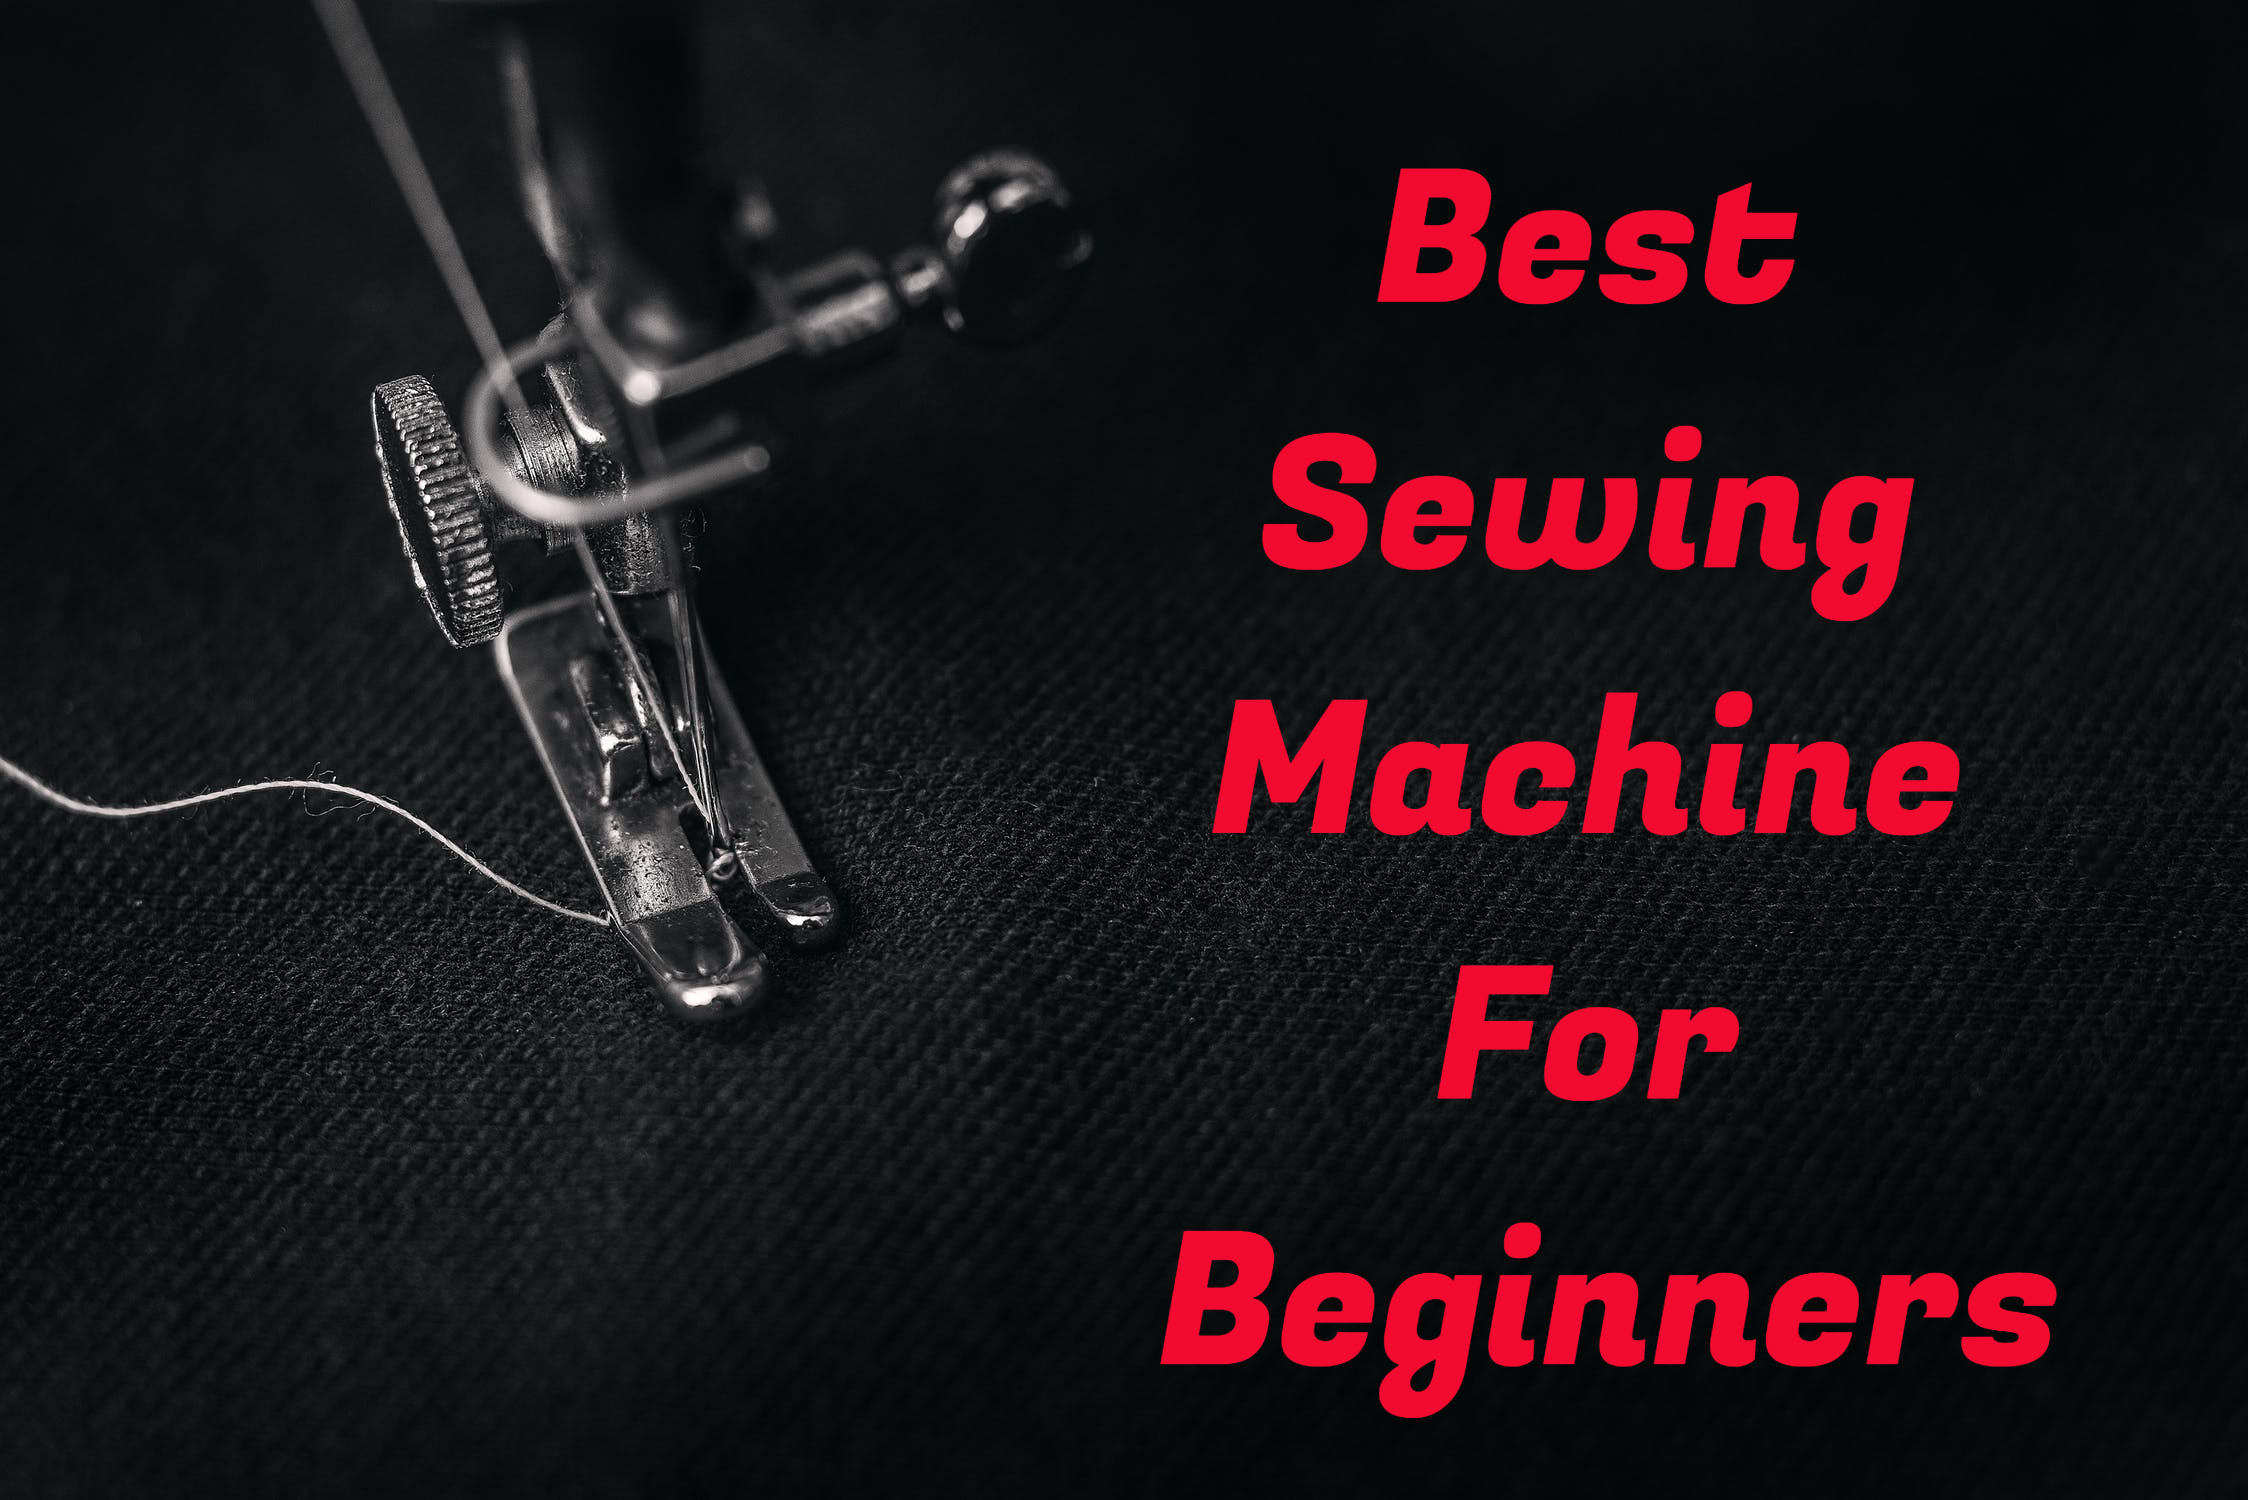 Top 12 Best Sewing Machines For Beginners Sewing Machines For